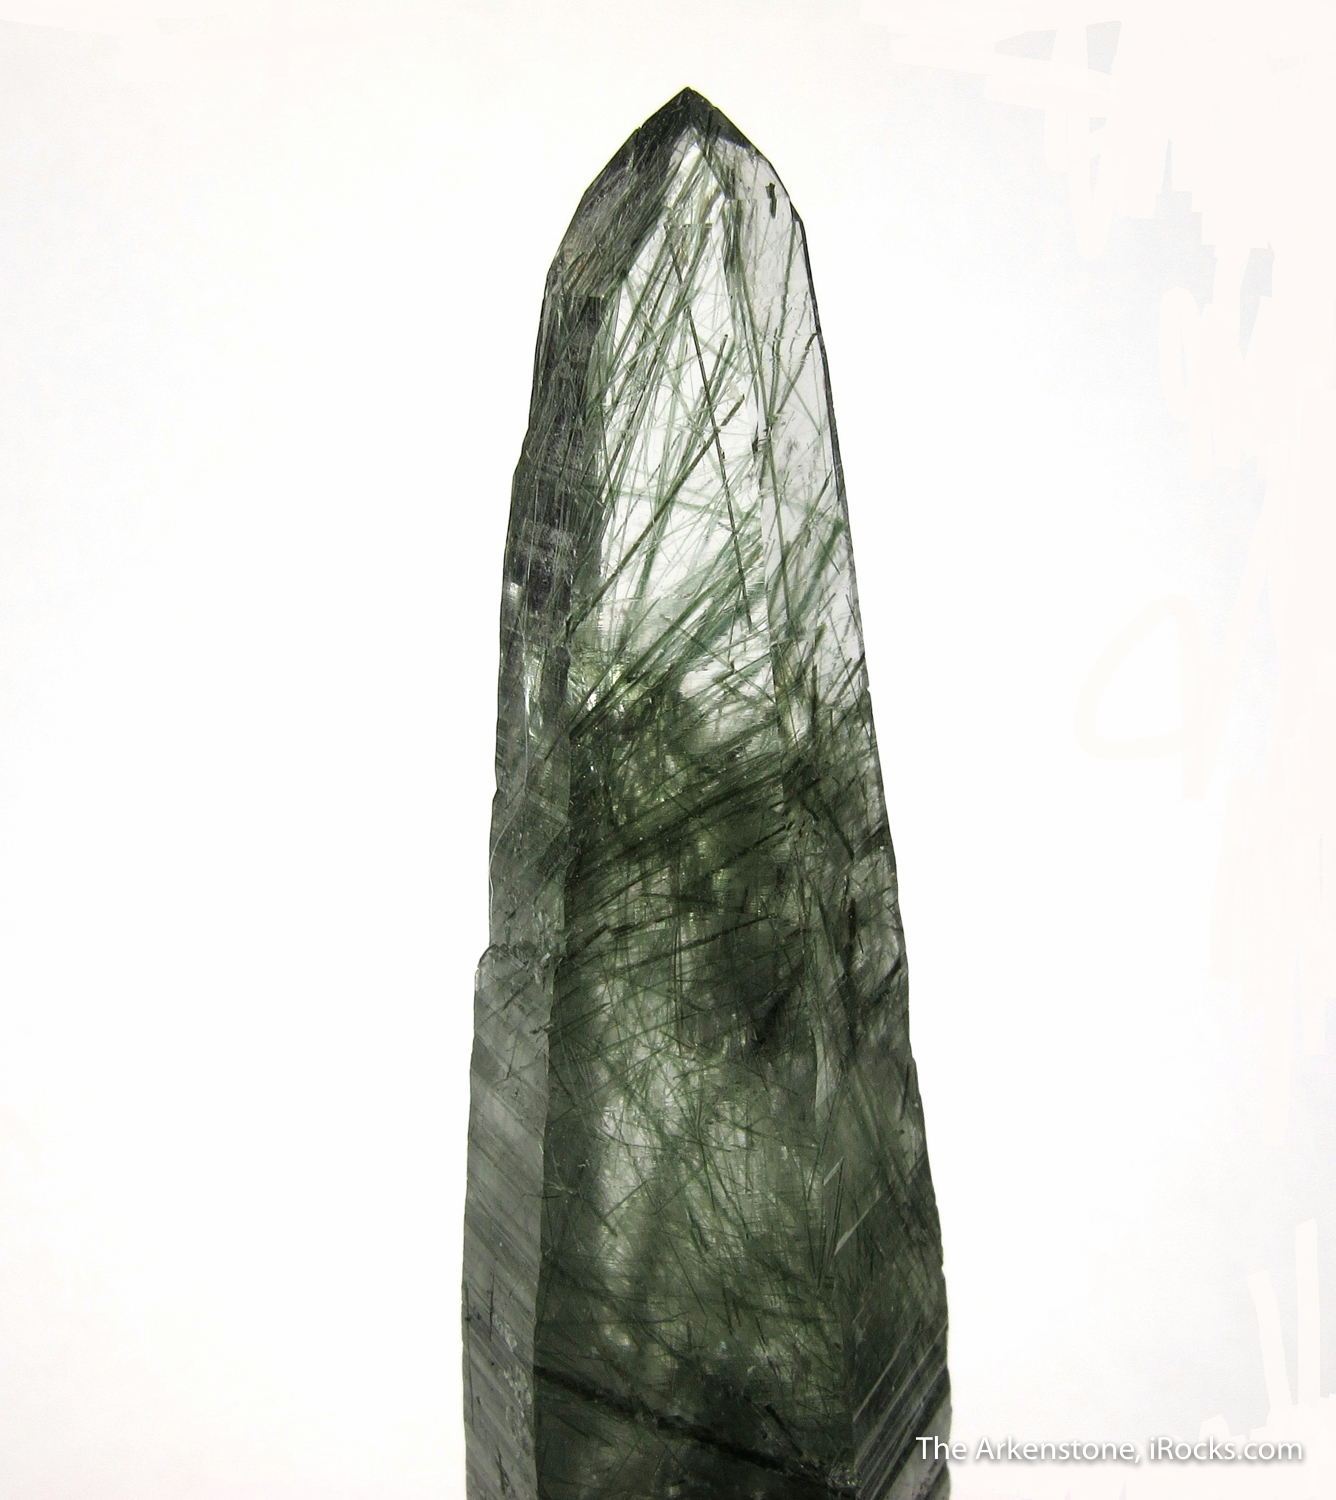 Large single crystal Quartz richly included slender needles Actinolite